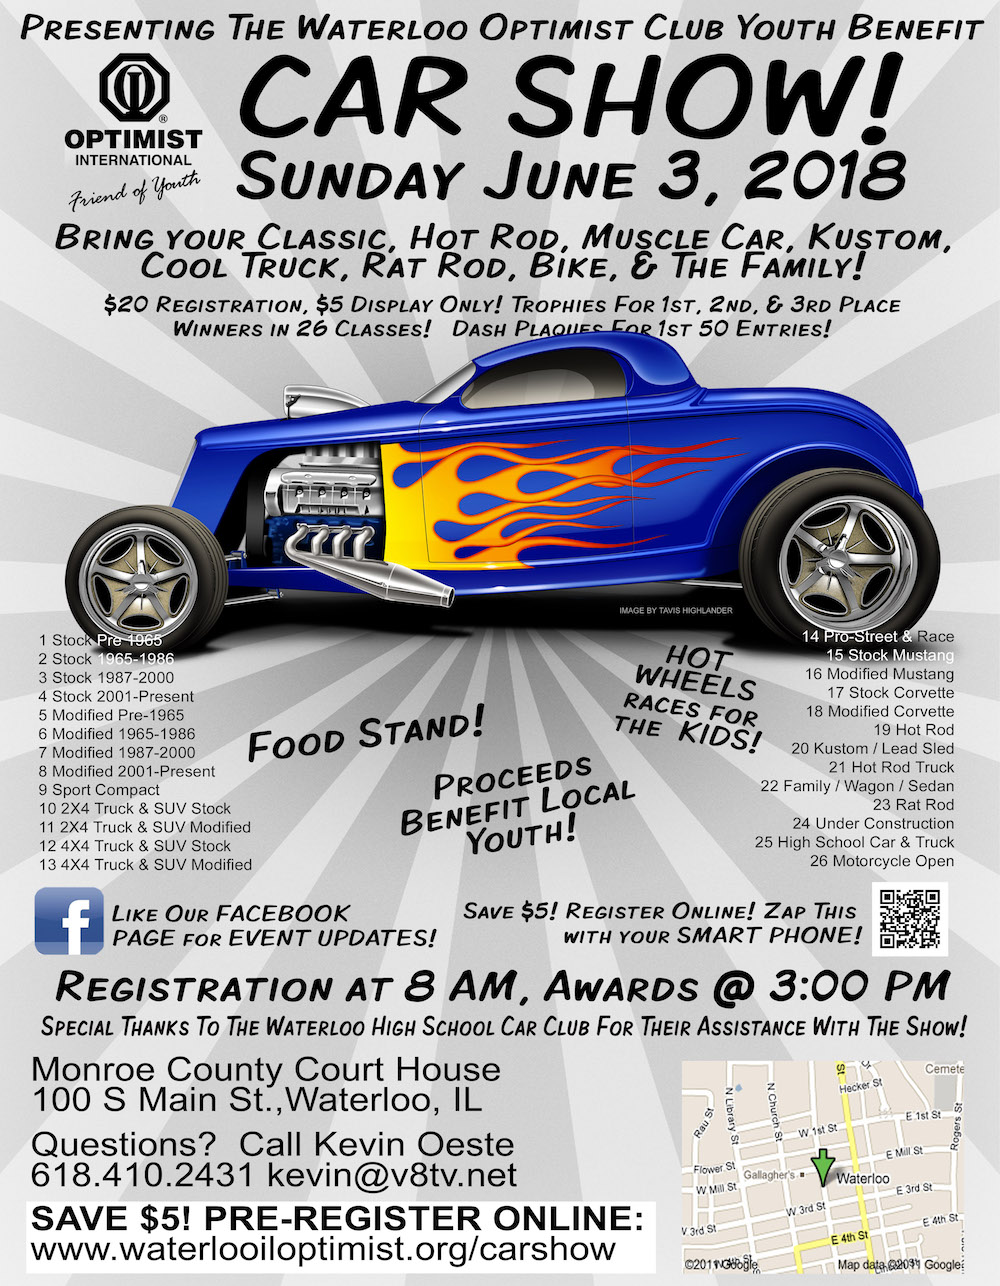 2018 Waterloo Optimist Car Show Flyer